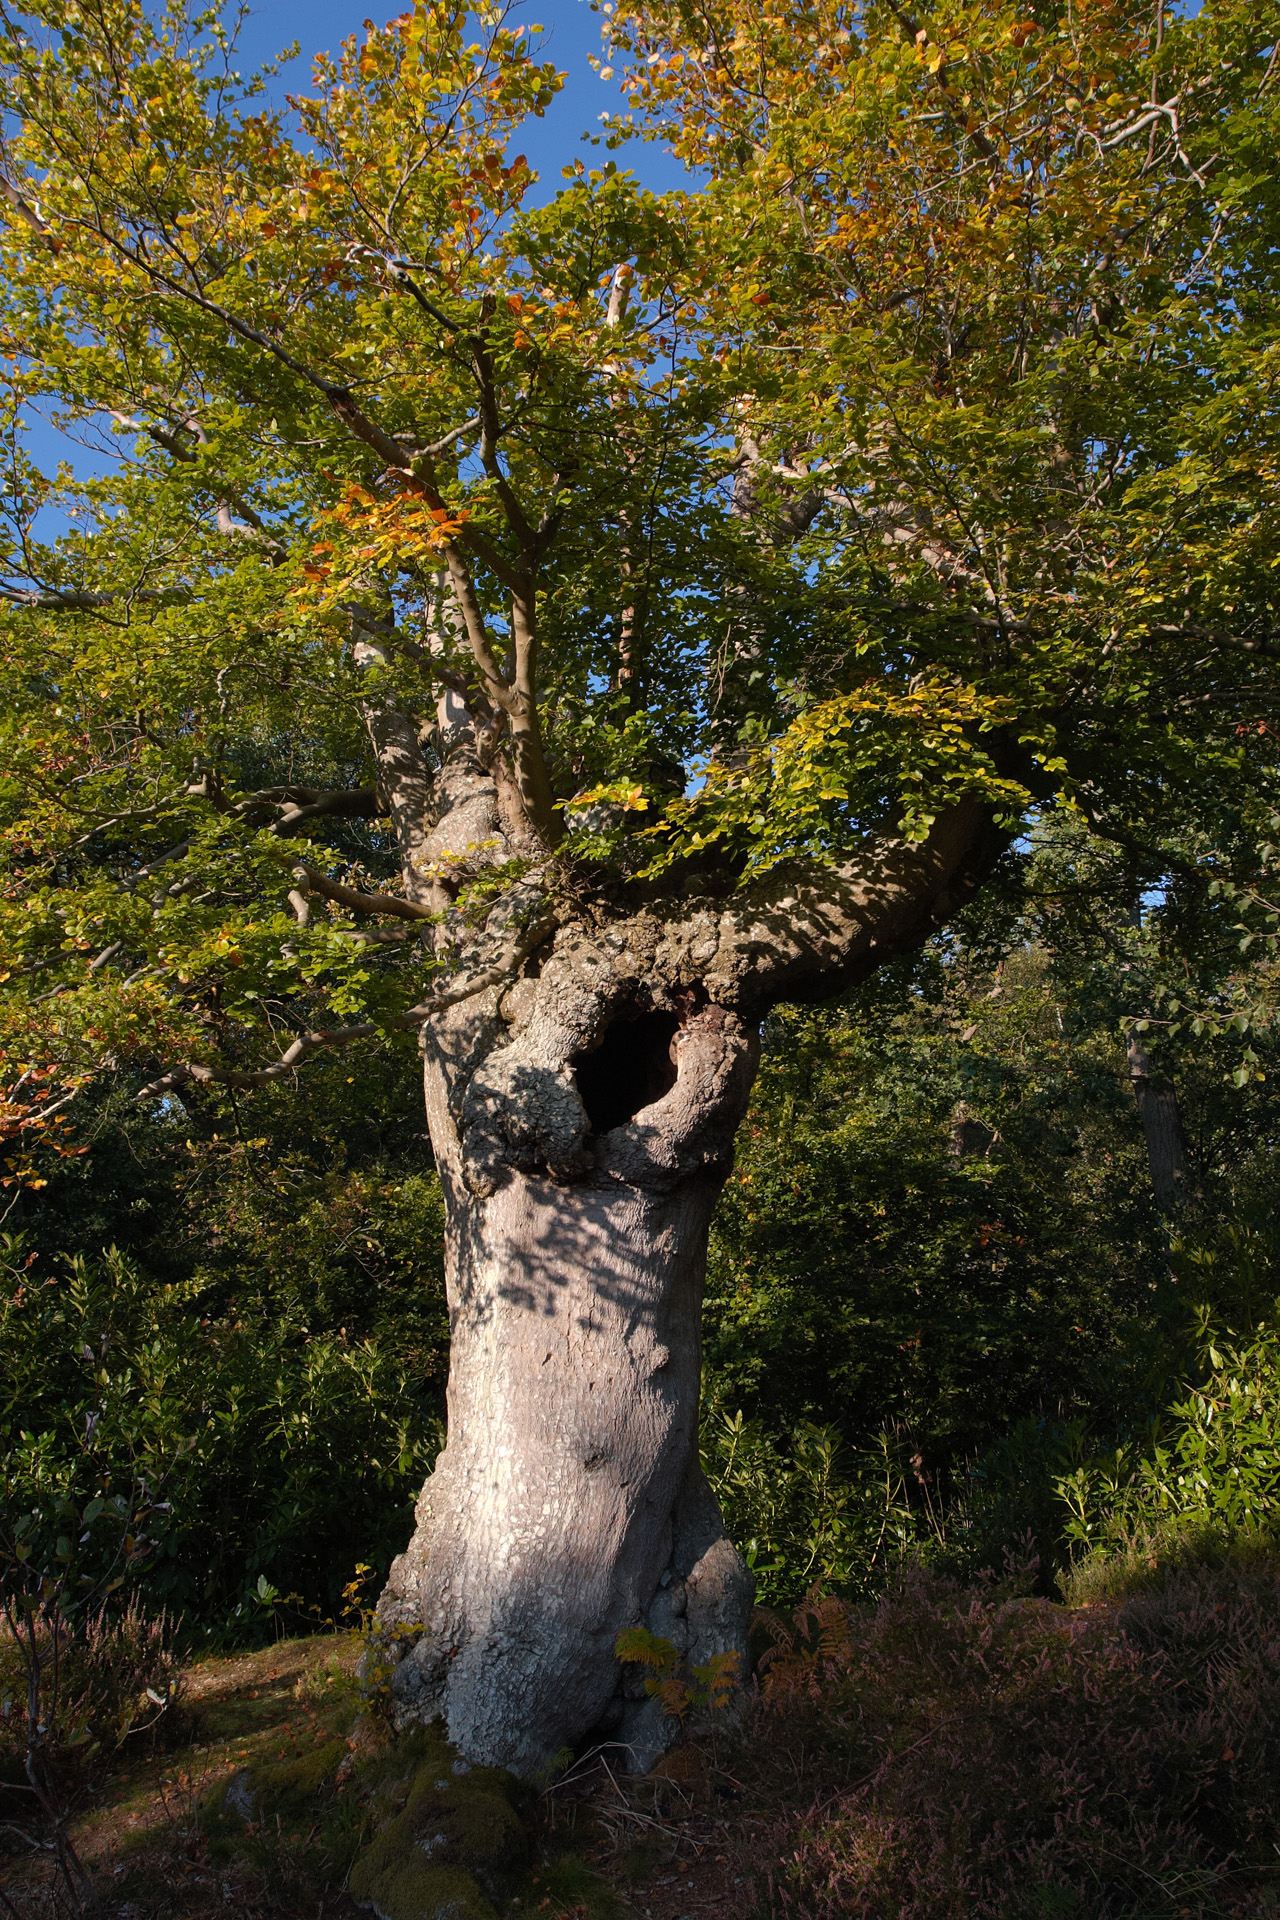 Pollarded Beech Tree at Burnham Beeches